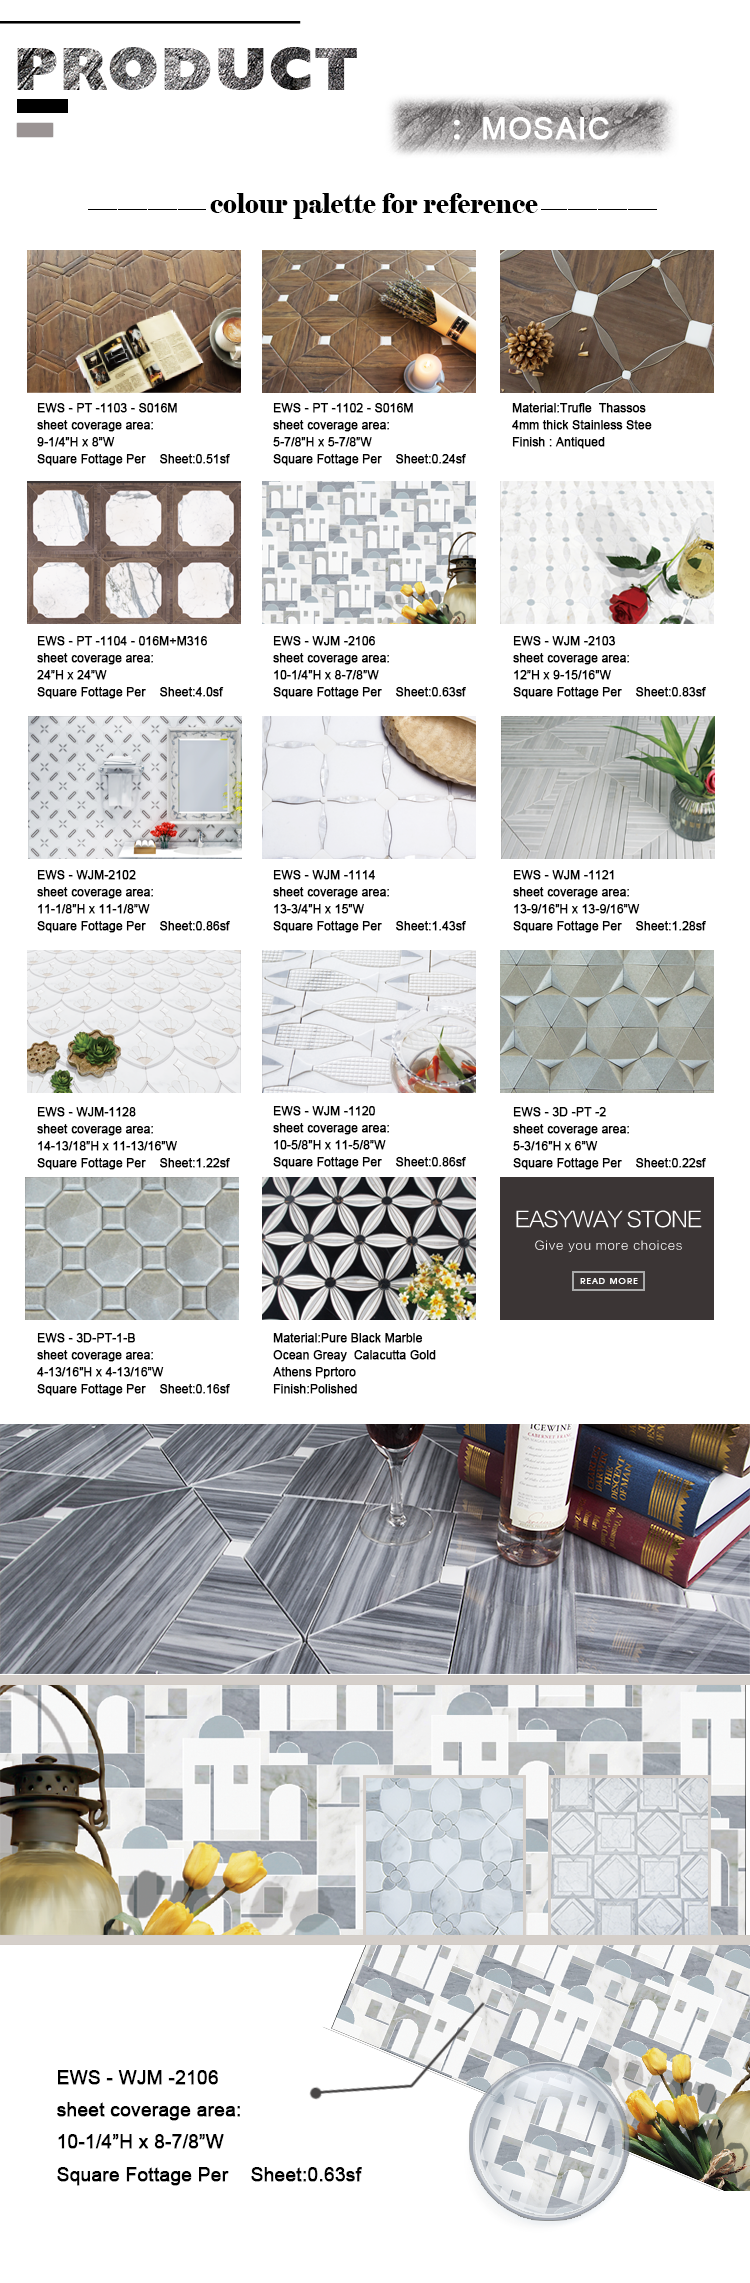 Custom Design Pattern Floor And Wall Mosaic Tile Water Jet Marble Mixed Moaic Moasic Mode Natural Marble Stone Mosaic Stone Buy Mosaic Tile Marble Tile Floor Decor New Pattern Mosaic Tile Water Jet